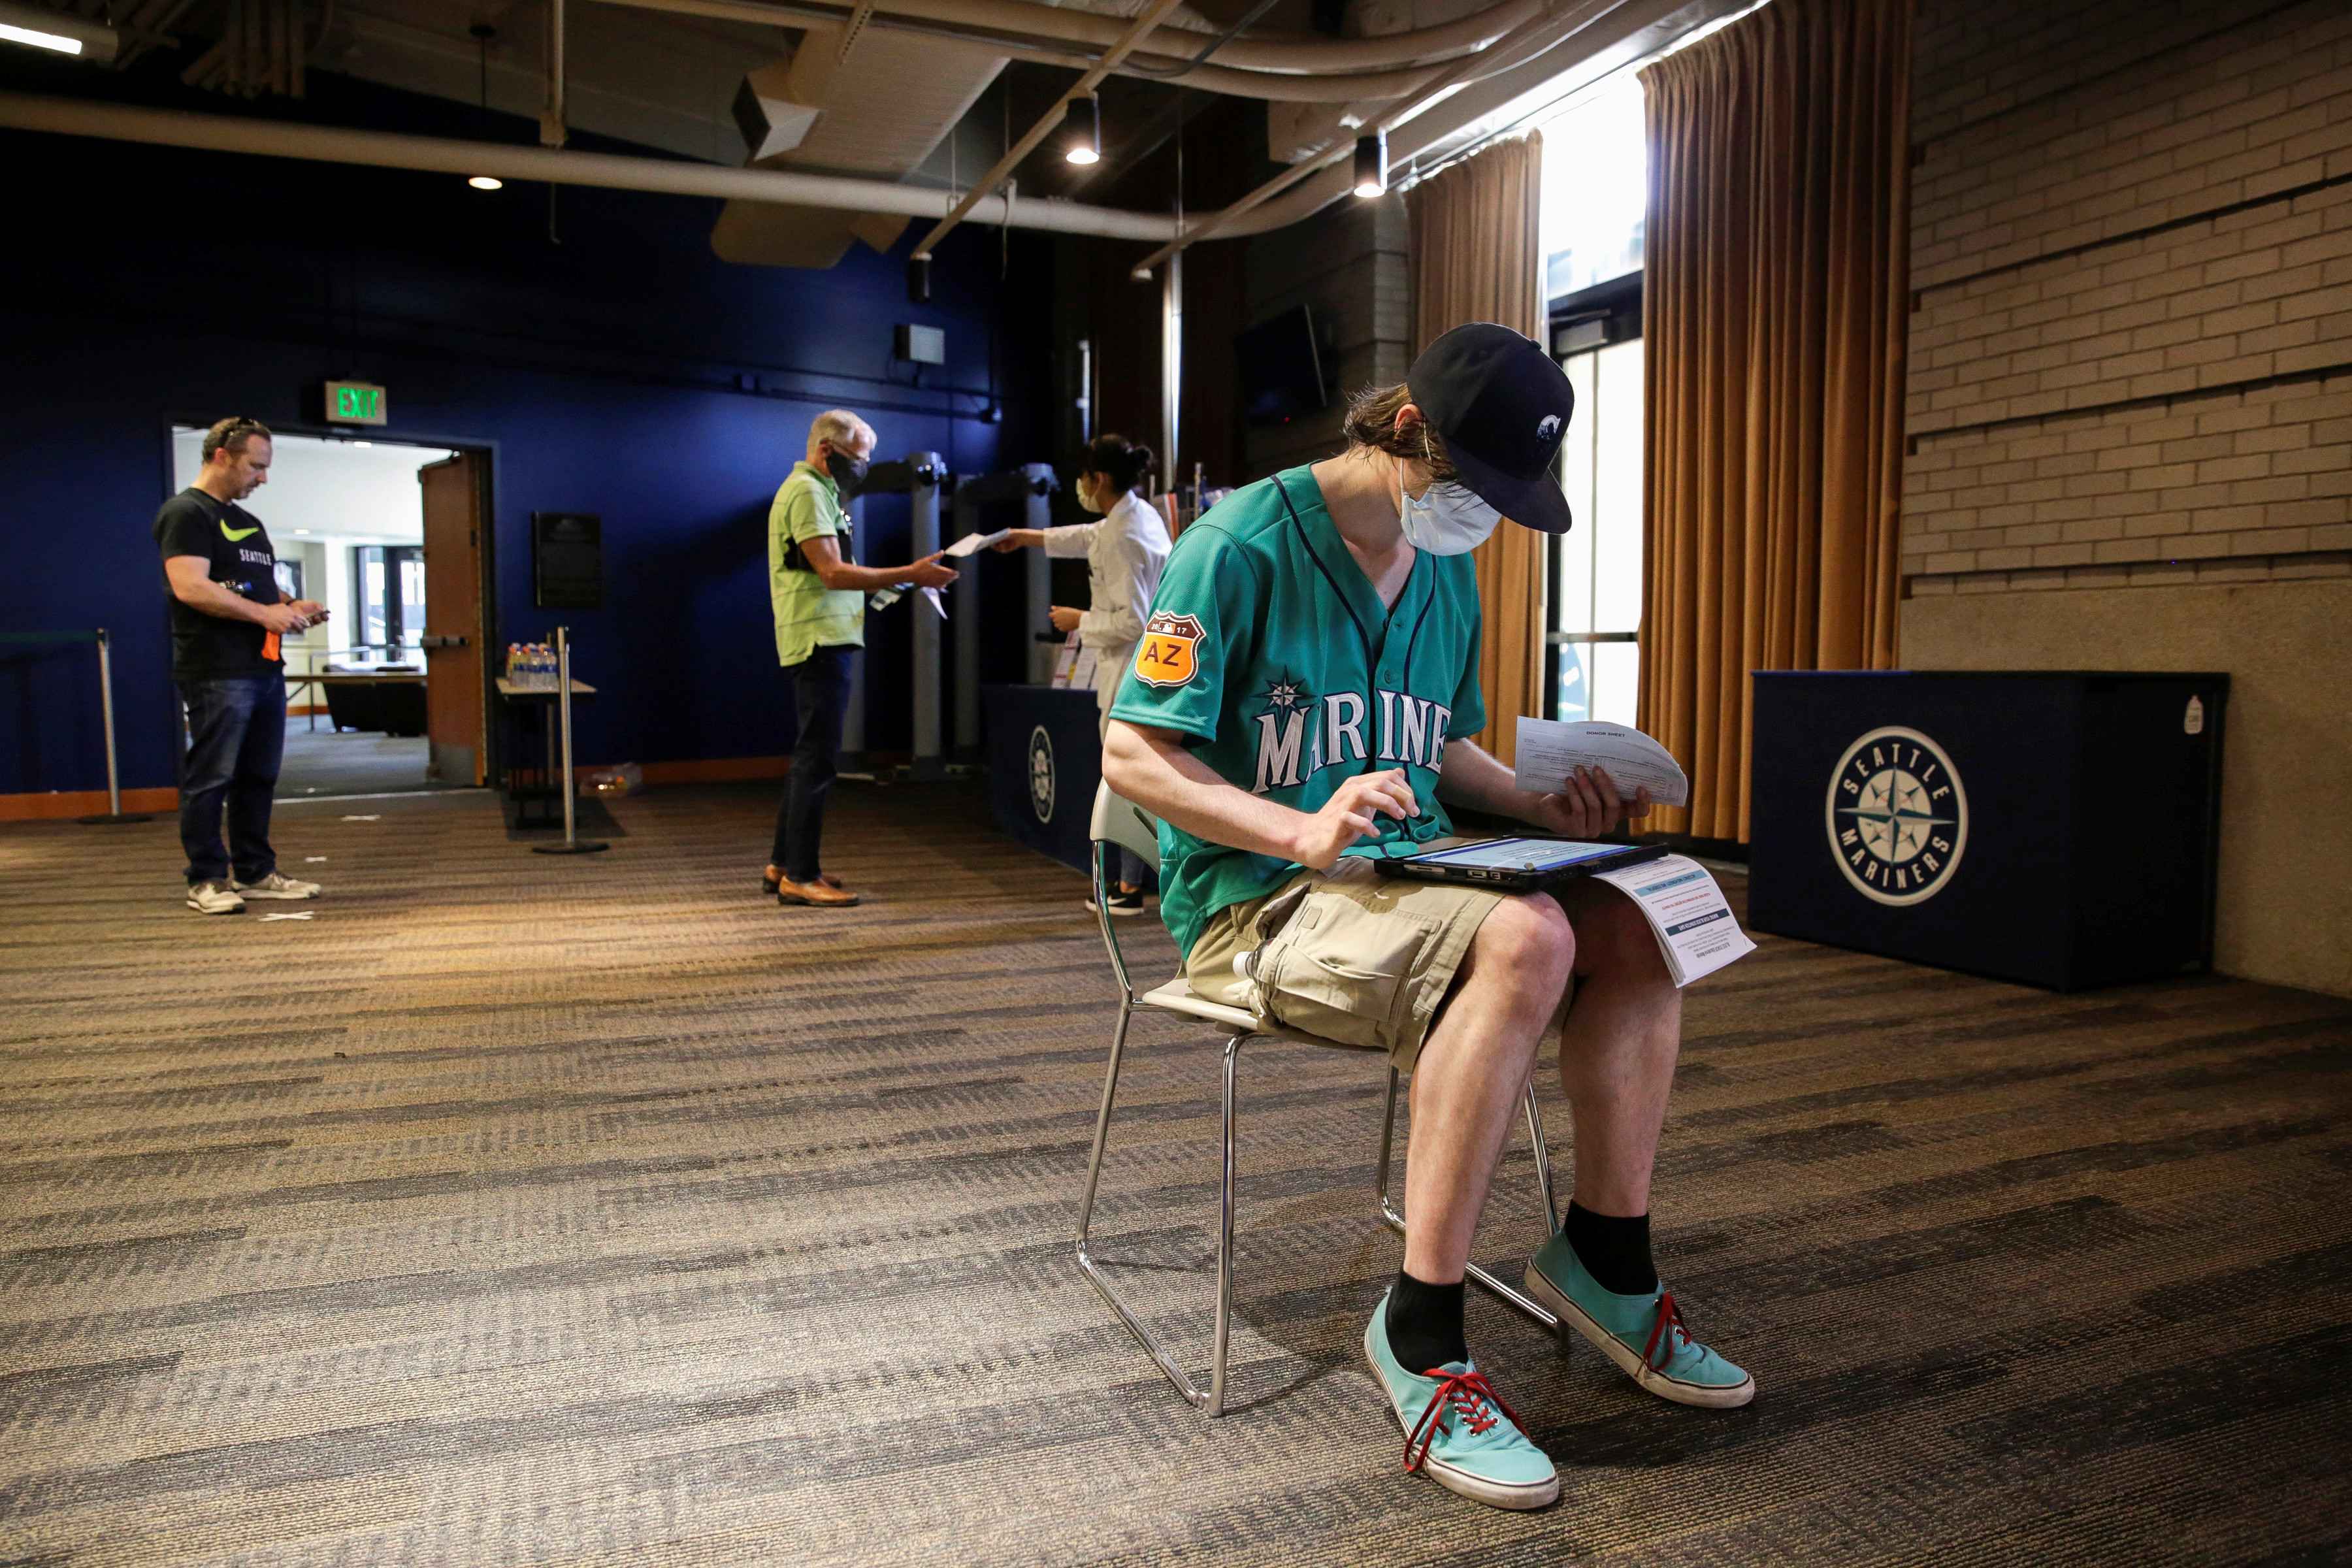 Craig McCall of Tacoma, Washington, who was furloughed from his job at the Emerald Queen Casino, fills out paperwork to donate blood during a Pop-Up Blood Drive experience at T-Mobile Park, the stadium of Major League Baseball's Seattle Mariners, as efforts continue to help slow the spread of the coronavirus disease (COVID-19) in Seattle, Washington, U.S. April 13, 2020.